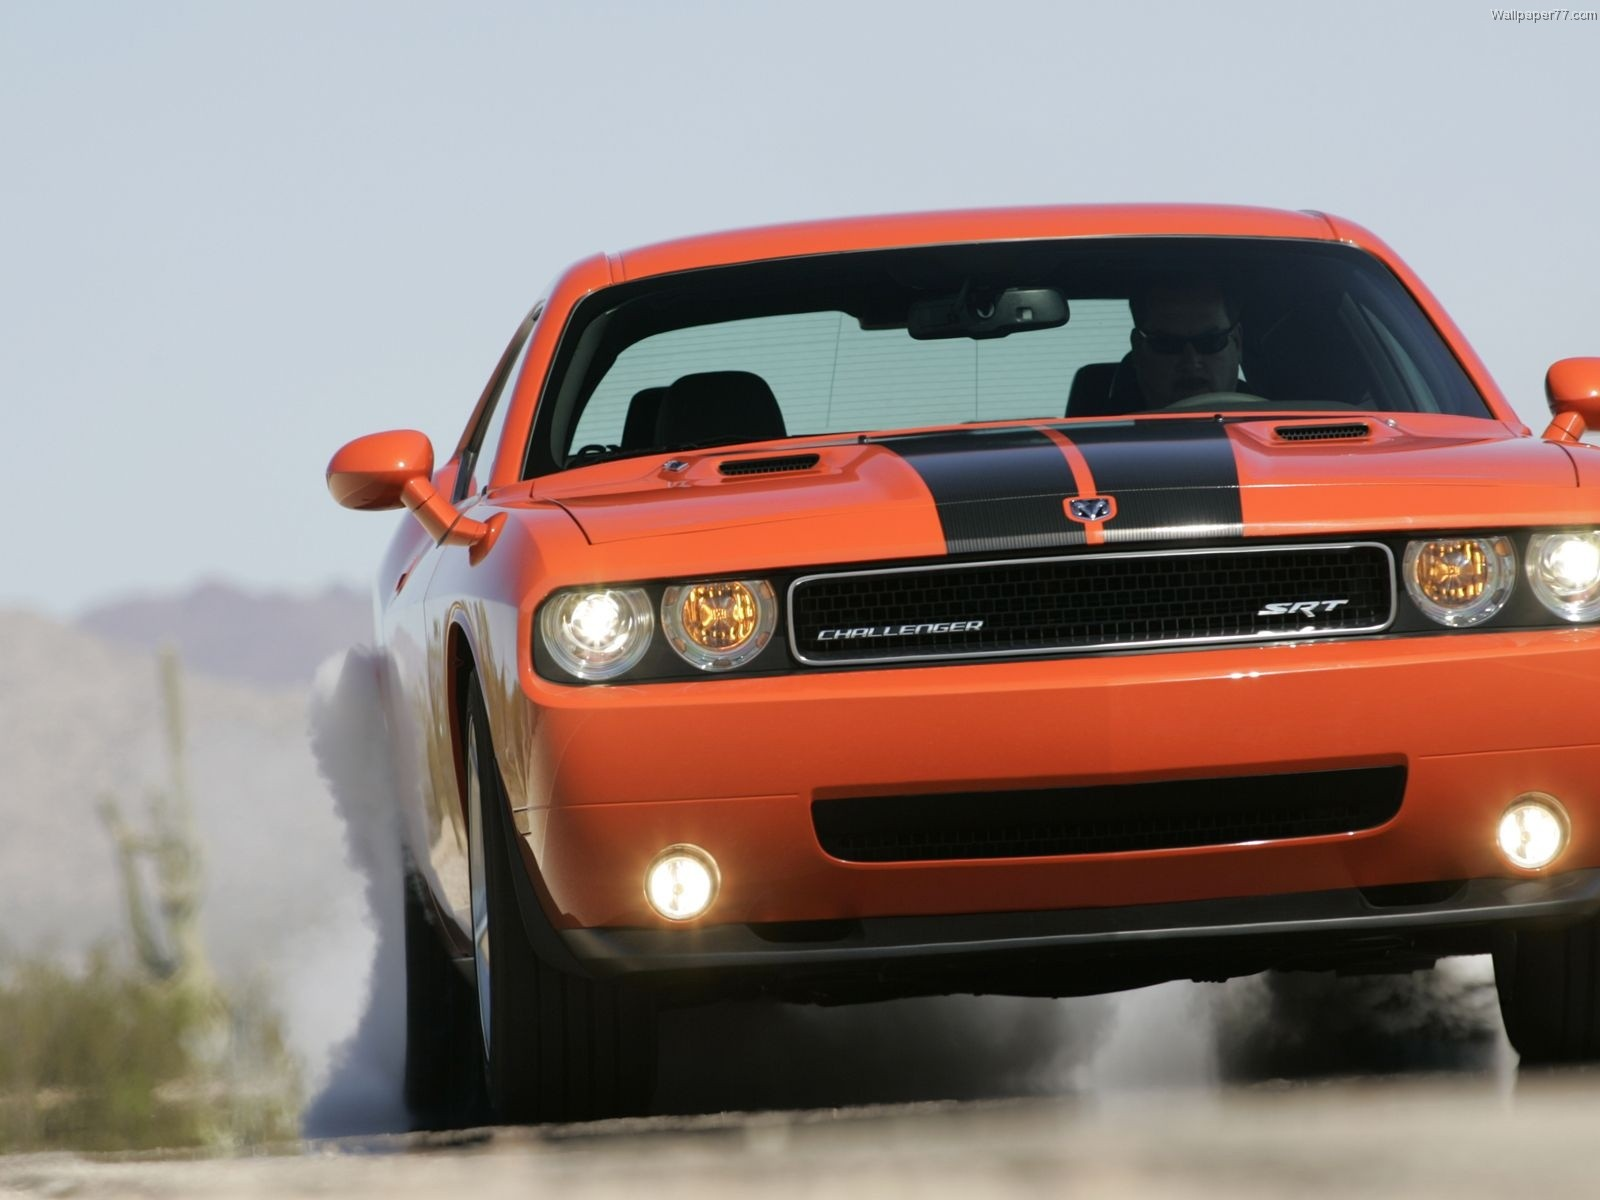 http://4.bp.blogspot.com/-_crudTQ1QfY/TilrxwnUqwI/AAAAAAAAA0U/VMXnT-aIePw/s1600/Dodge-Challenger-SRT8-2008-Burnout-car-wallpapers-dodge-wallpapers-1600x1200.jpg